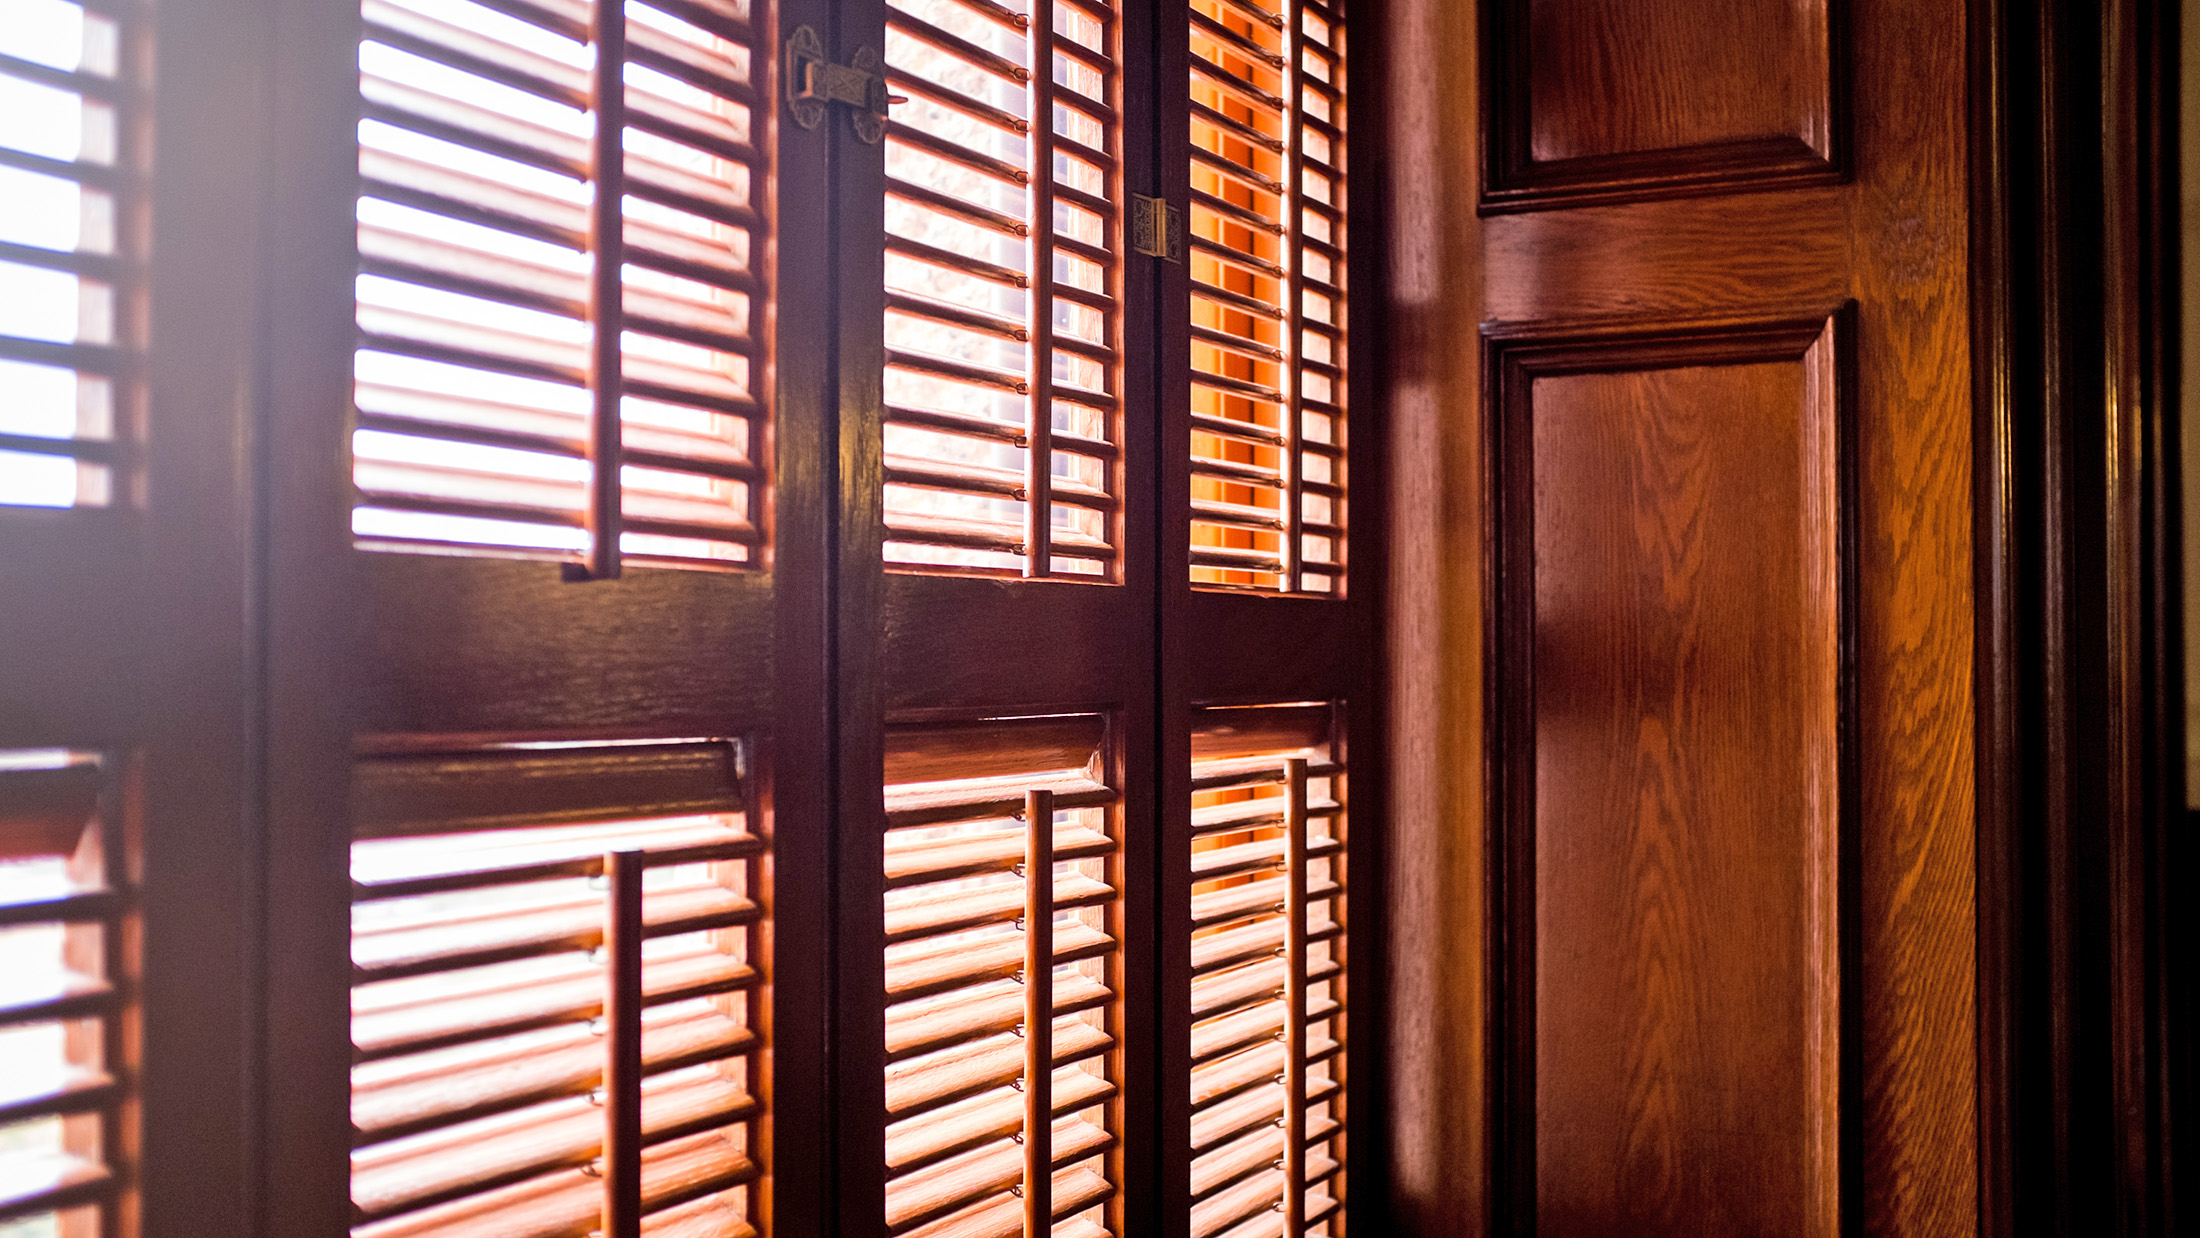 013459014 - Caring For Plantation Window Shutters Wood